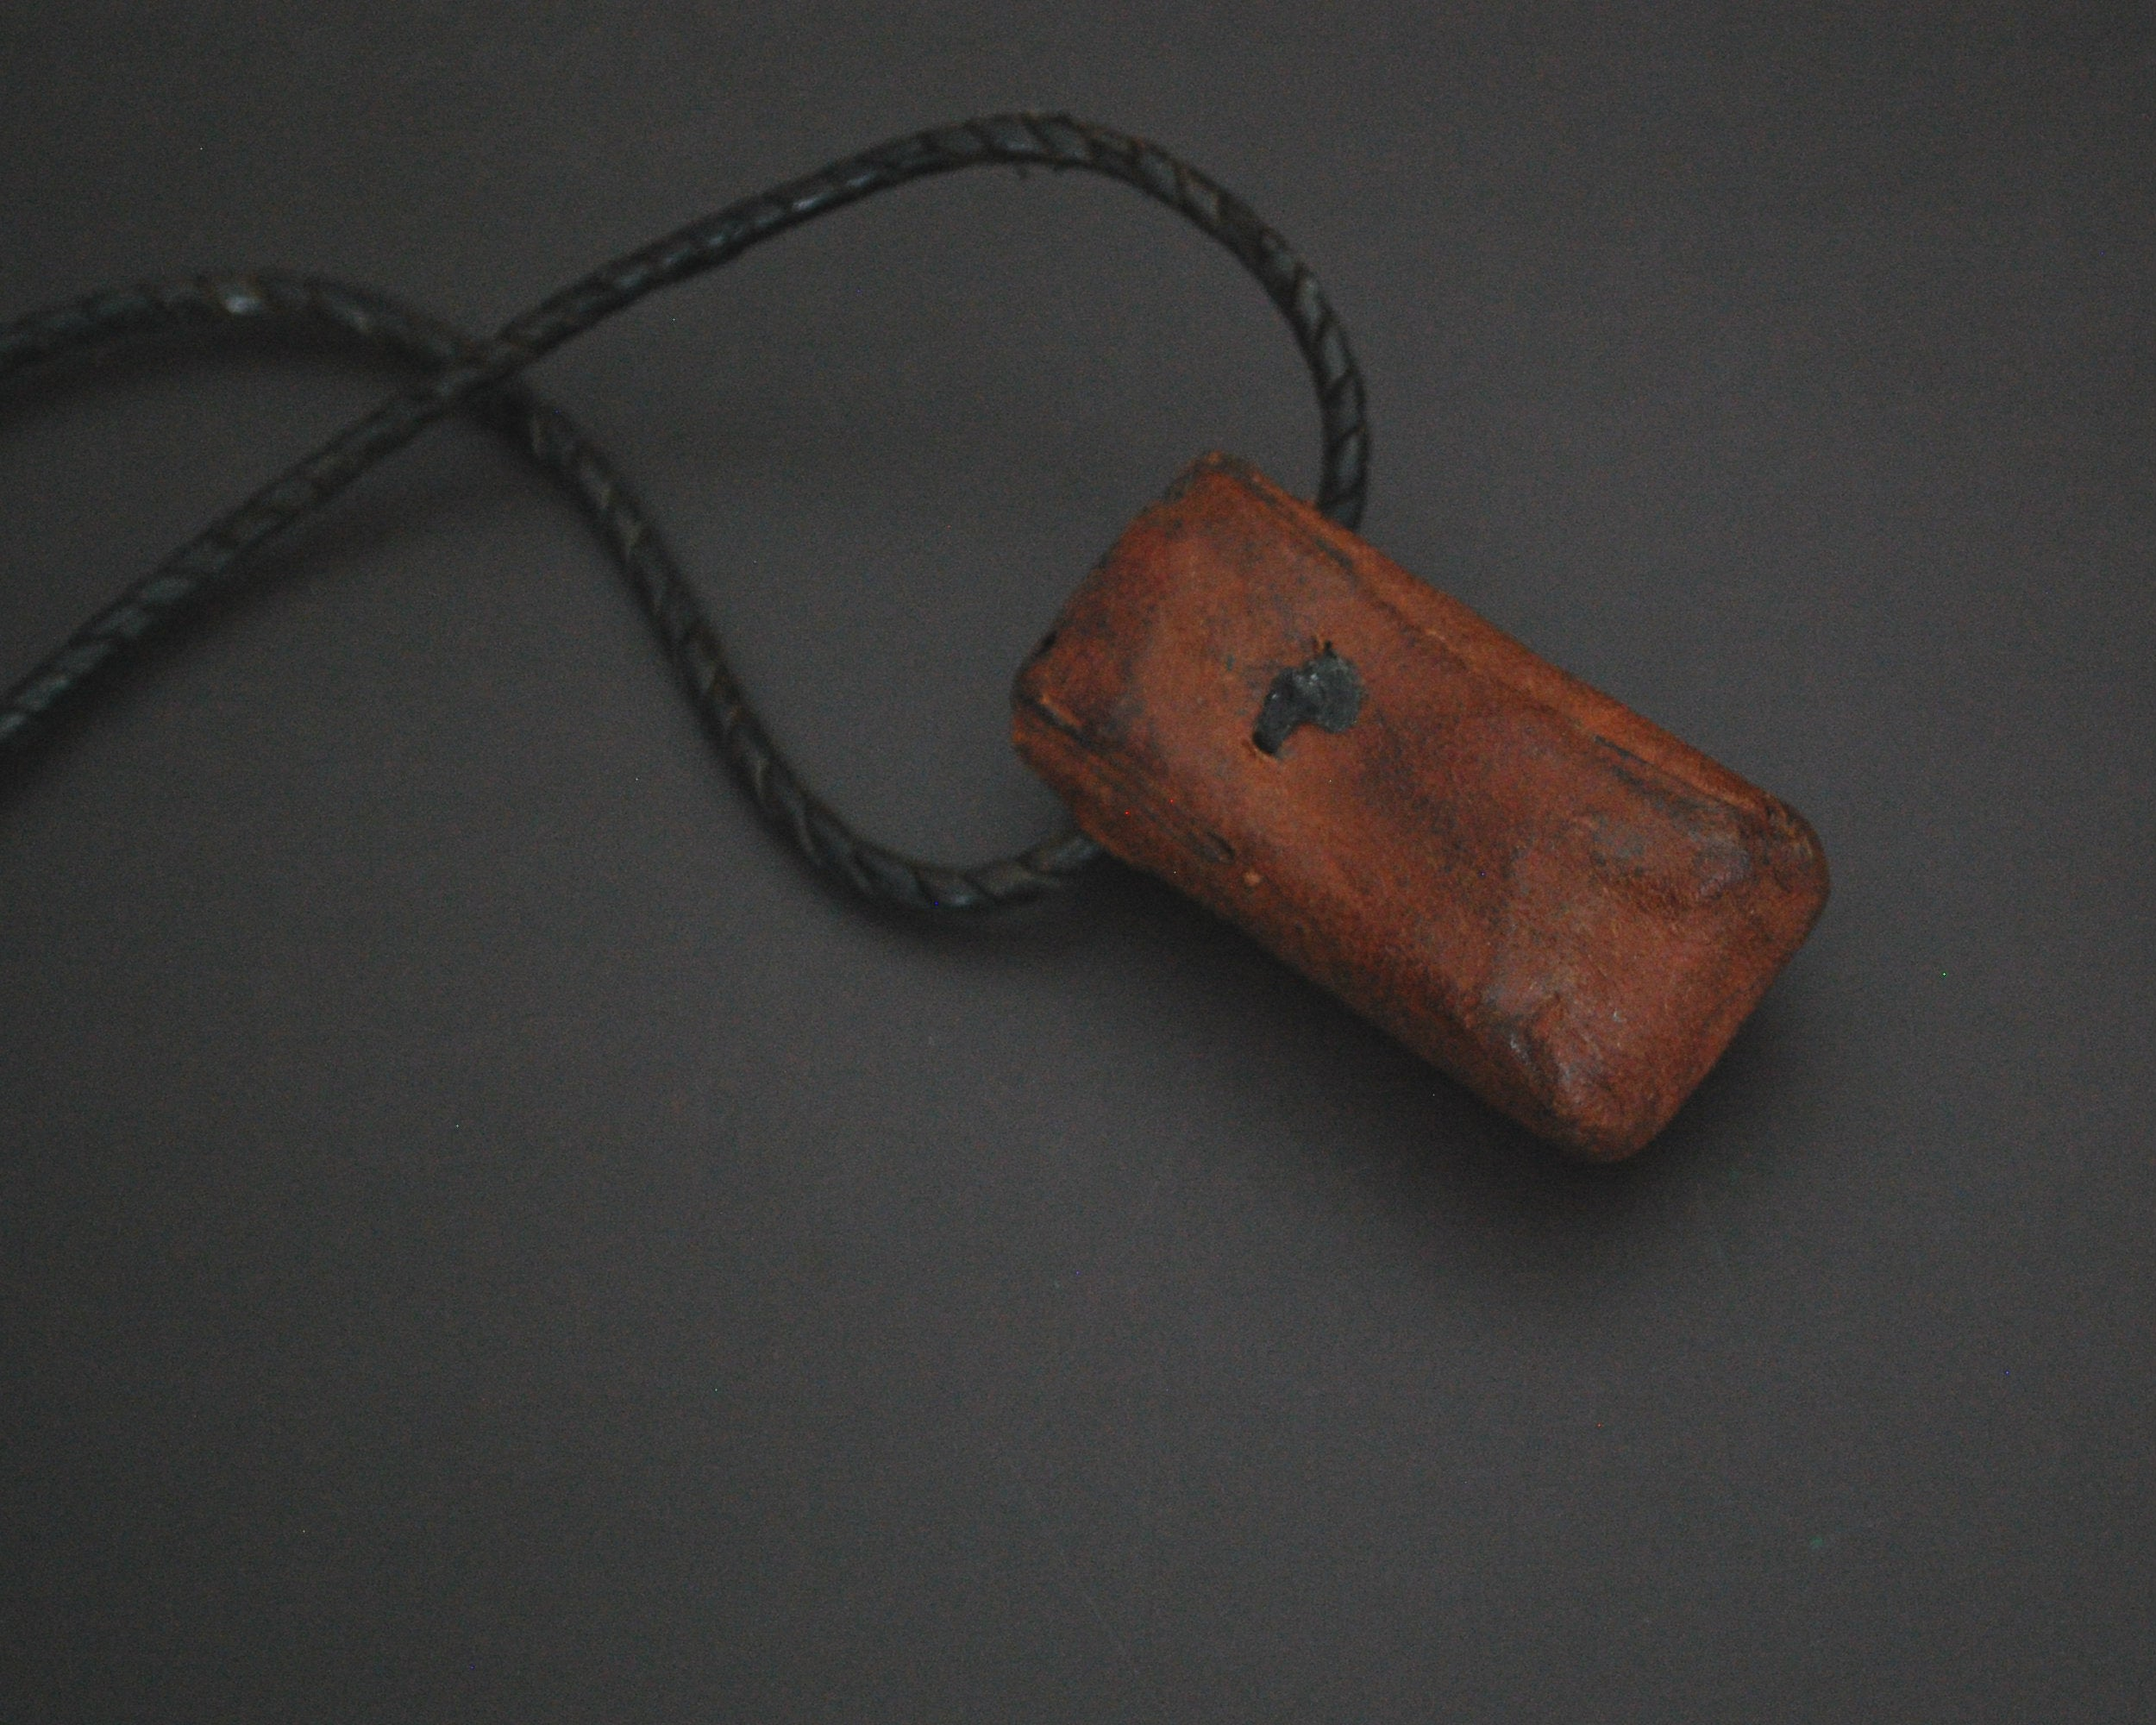 Tuareg Cross Leather Talisman Pendant on Leather Cord